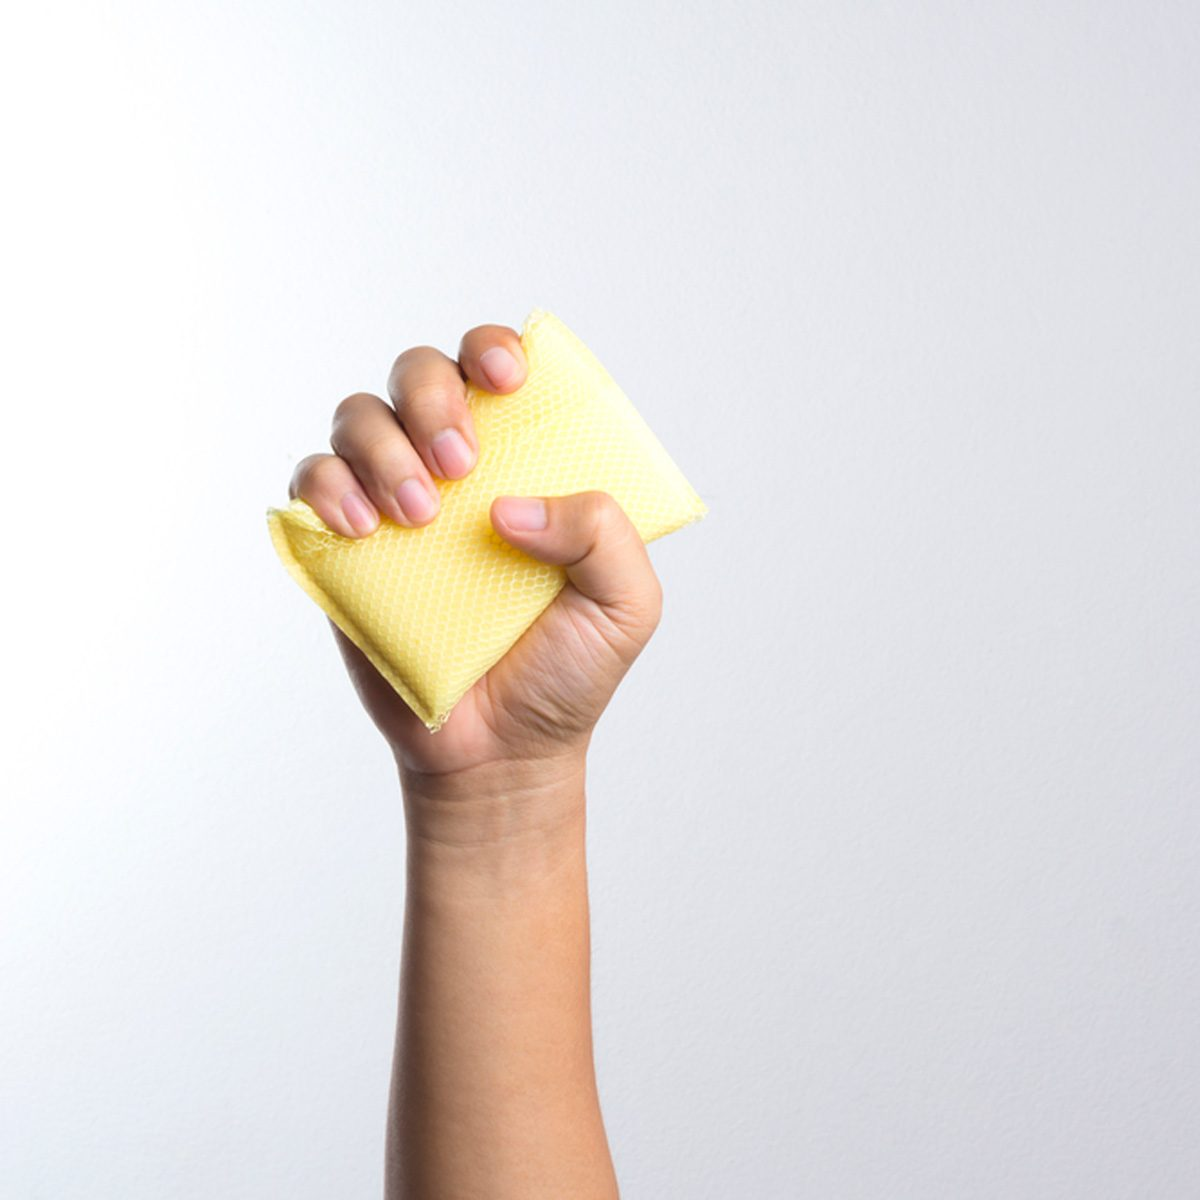 hand holding kitchen sponge